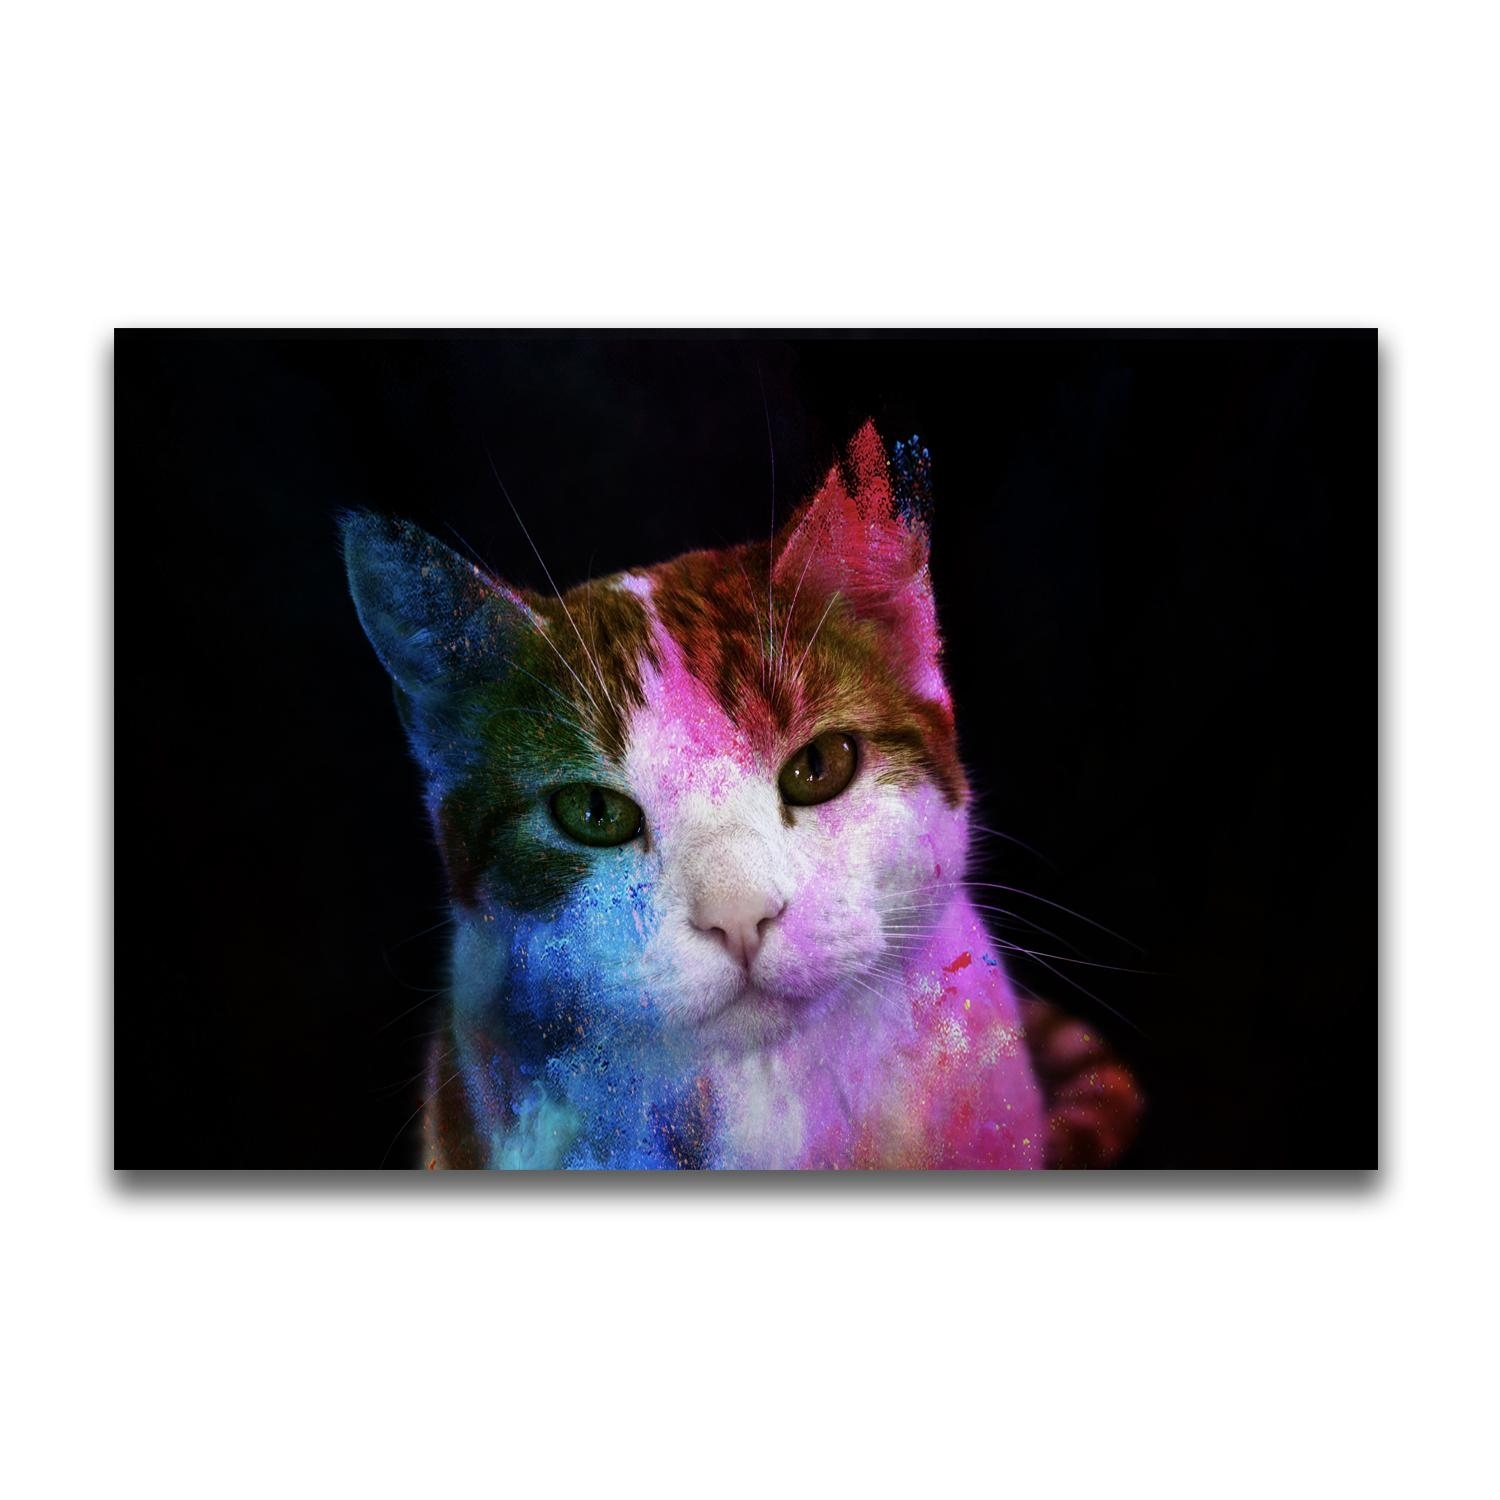 Yj Art A Colorful Cat Unframed Modern Canvas Wall Art For Home And inside Cat Canvas Wall Art (Image 20 of 20)